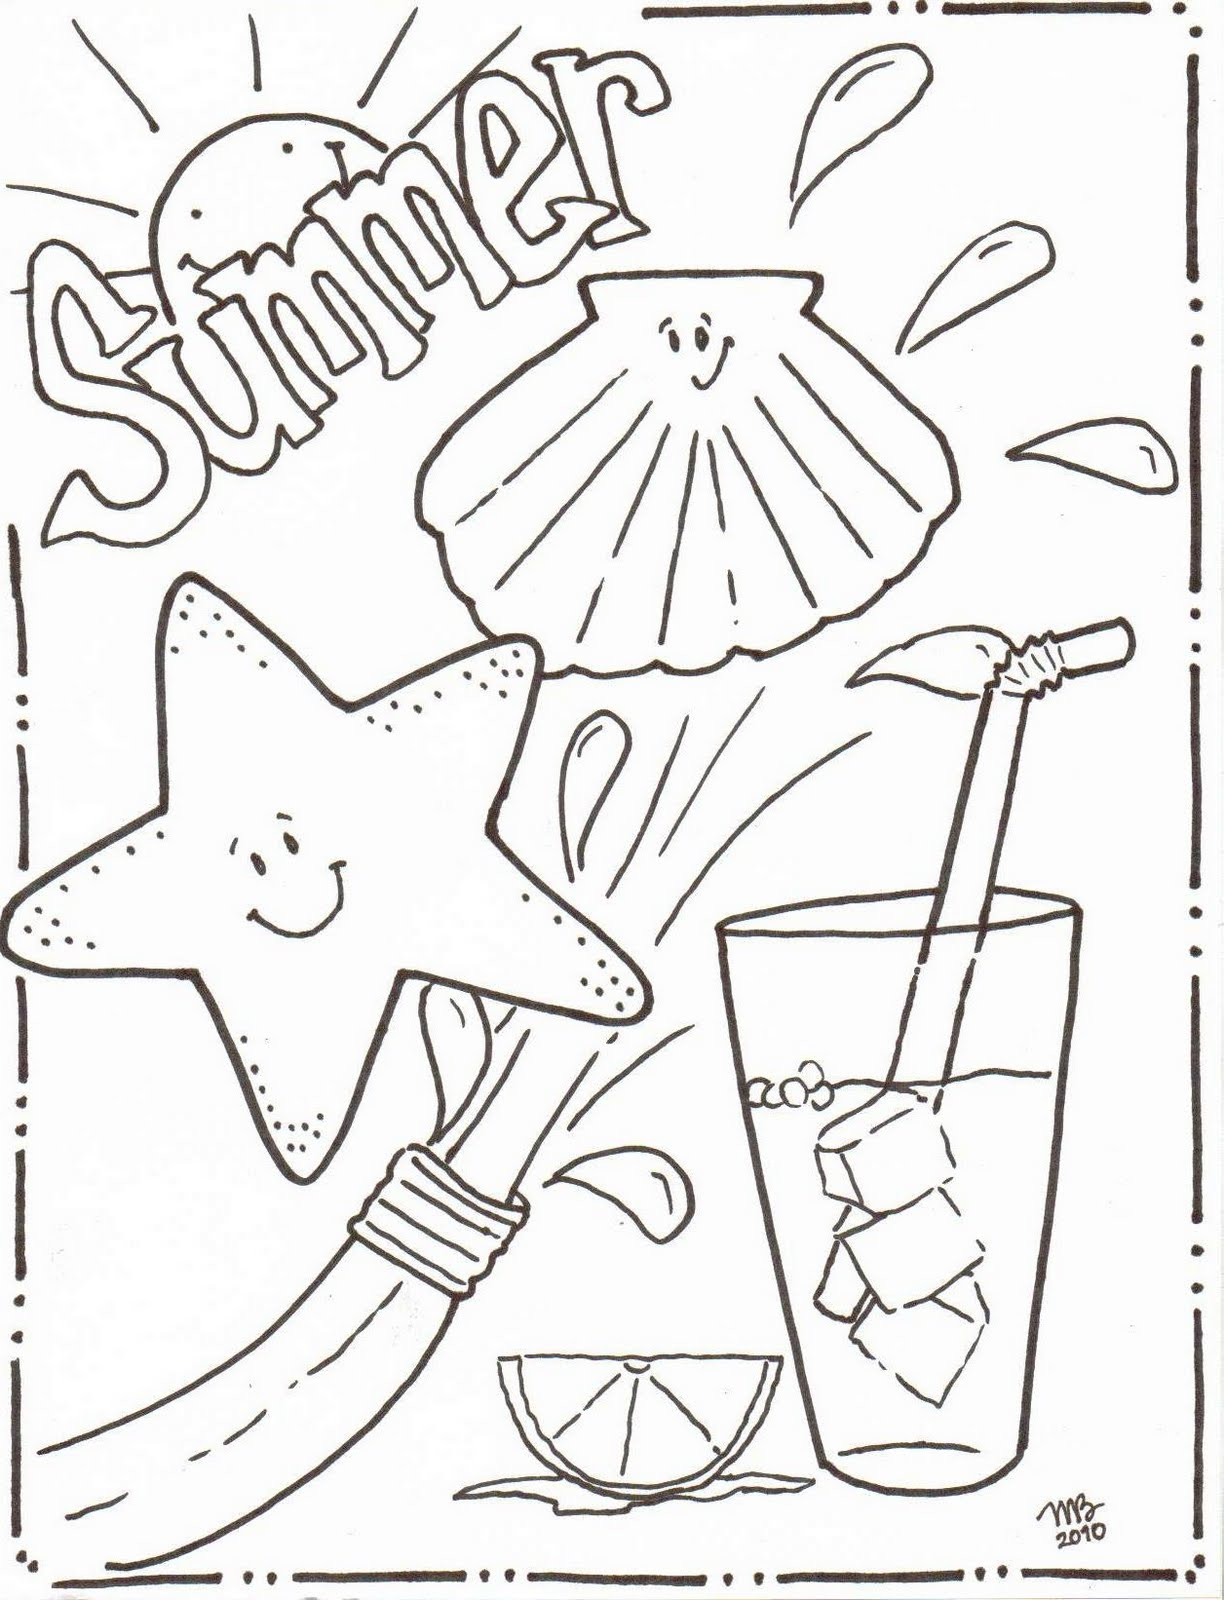 Coloring Pages : Free Toddler Summerng Pages Beach Sheets Or - Free Printable Beach Coloring Pages